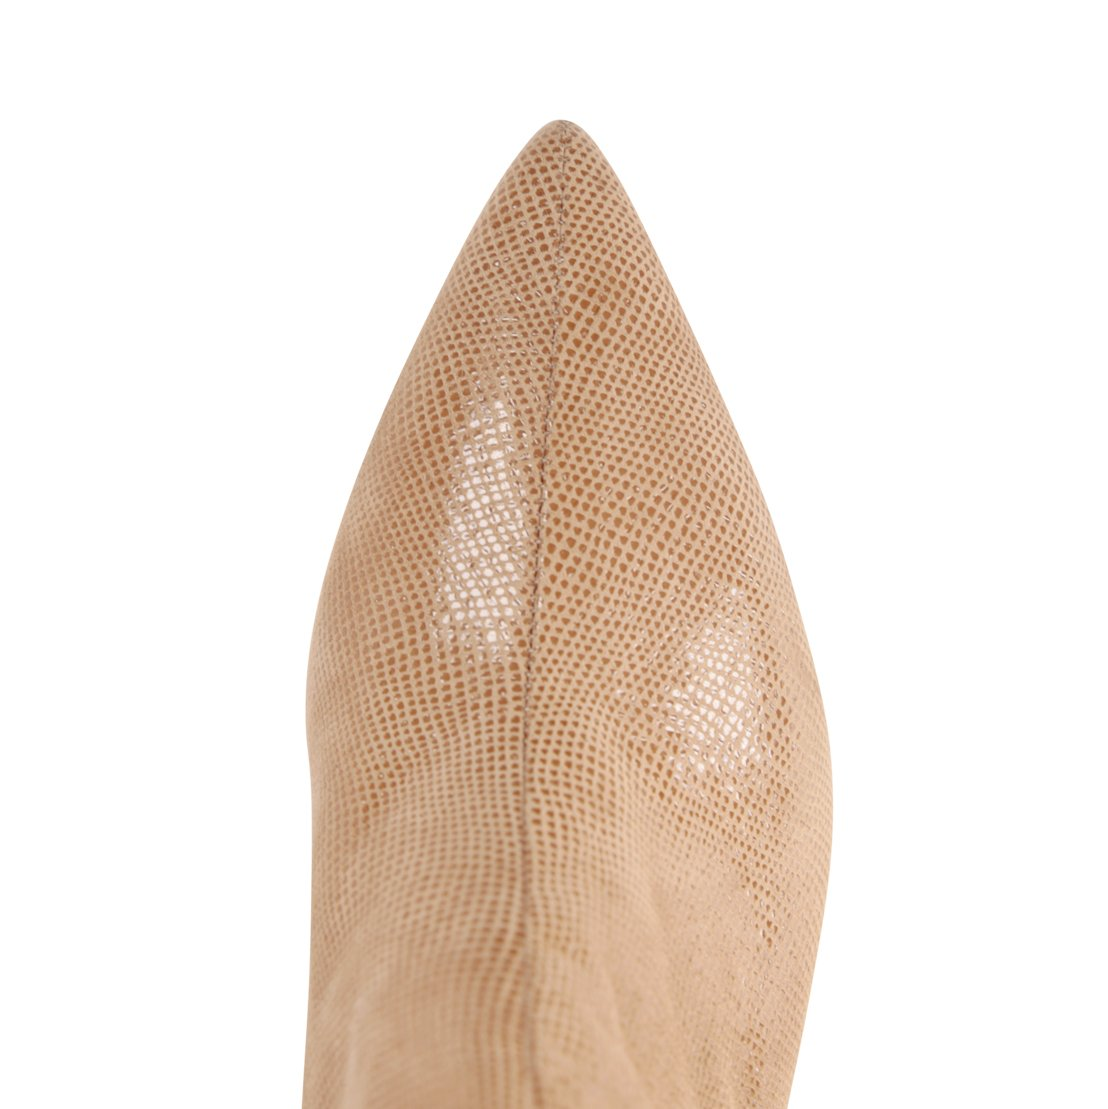 SYRENE - Karung Tan + Velukid White, VIAJIYU - Women's Hand Made Sustainable Luxury Shoes. Made in Italy. Made to Order.